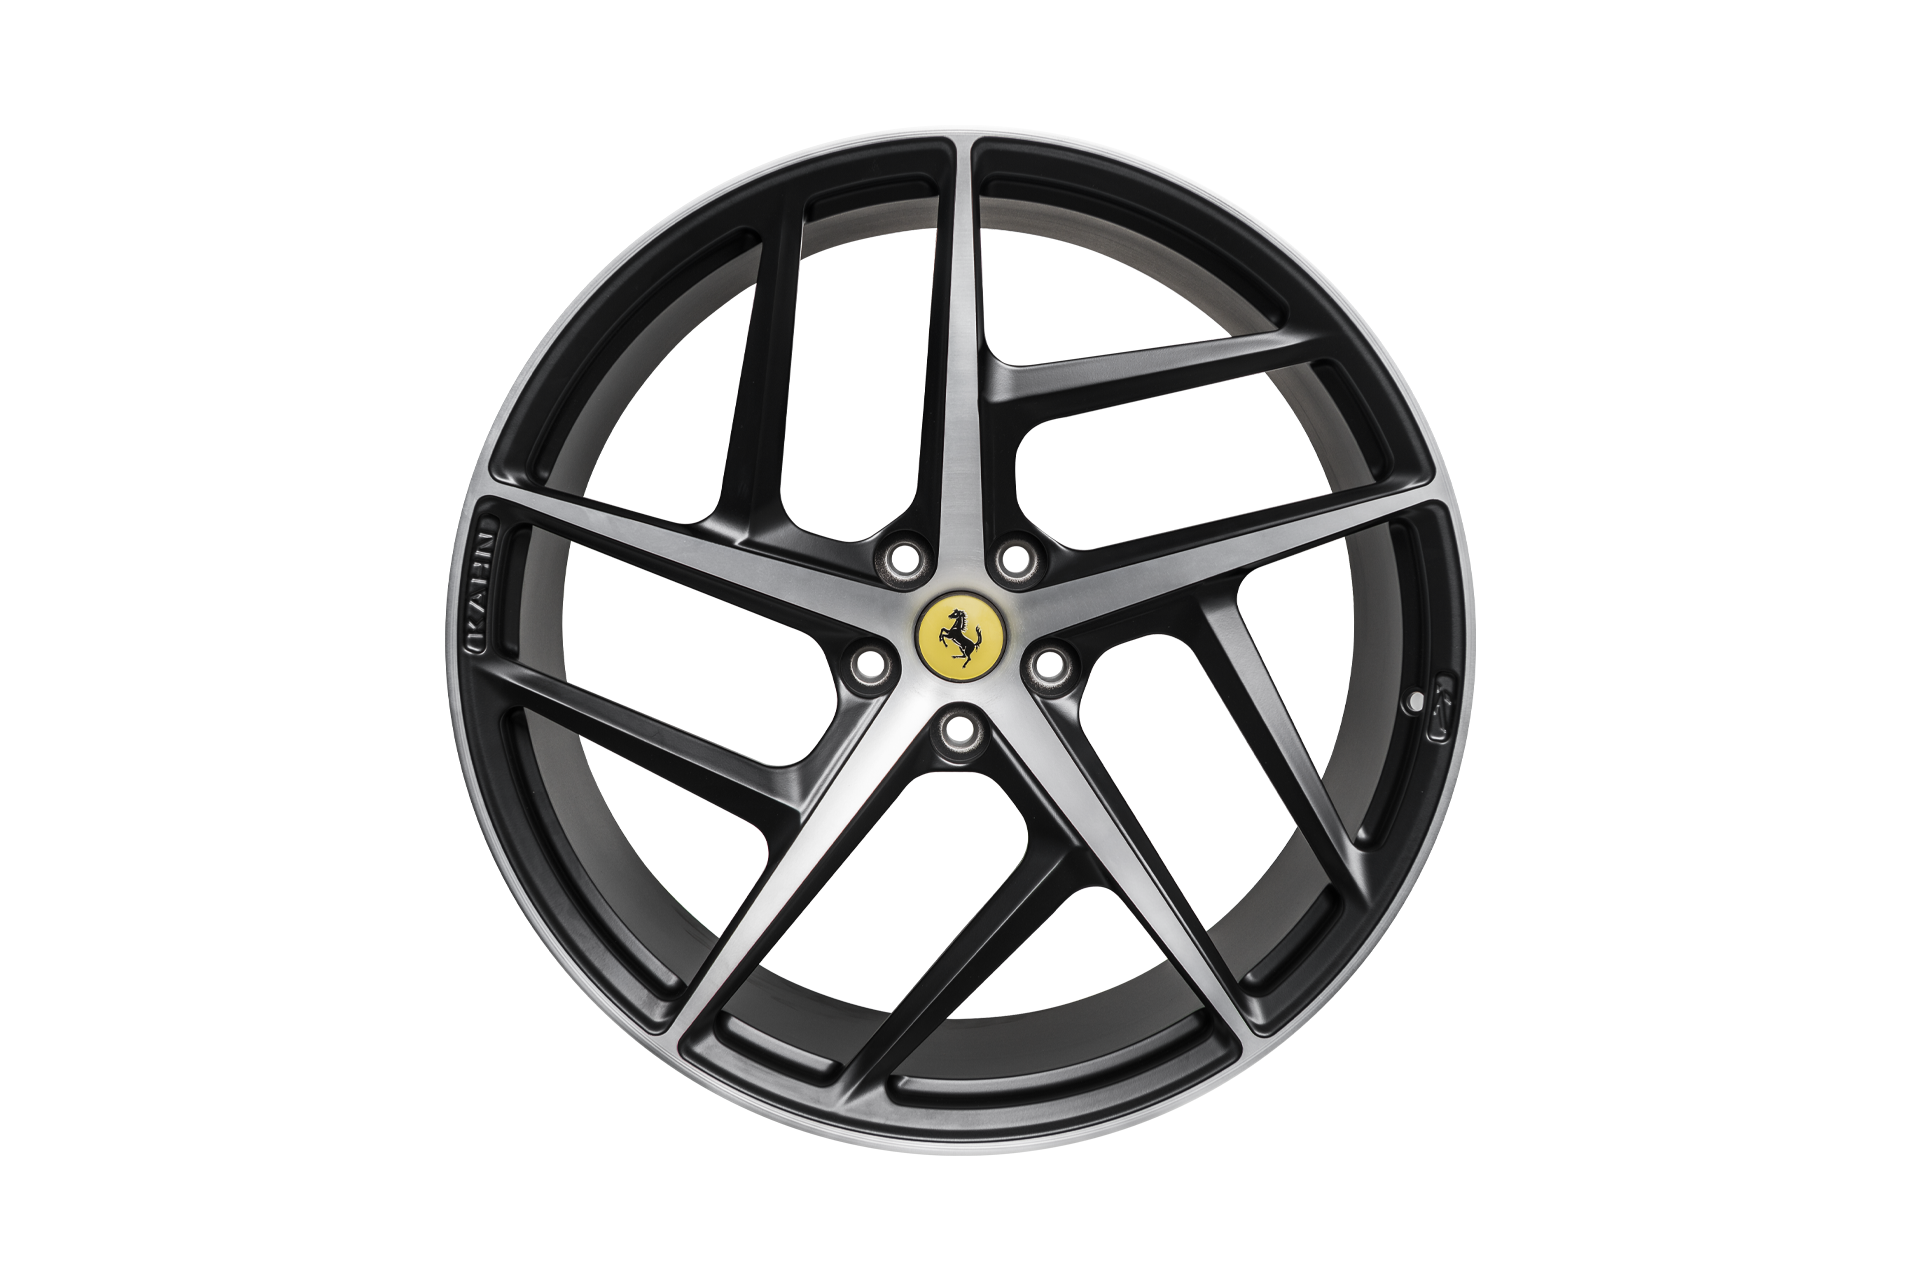 Ferrari 812 Superfast Type 52 Forged Light Alloy Wheels Image 4586